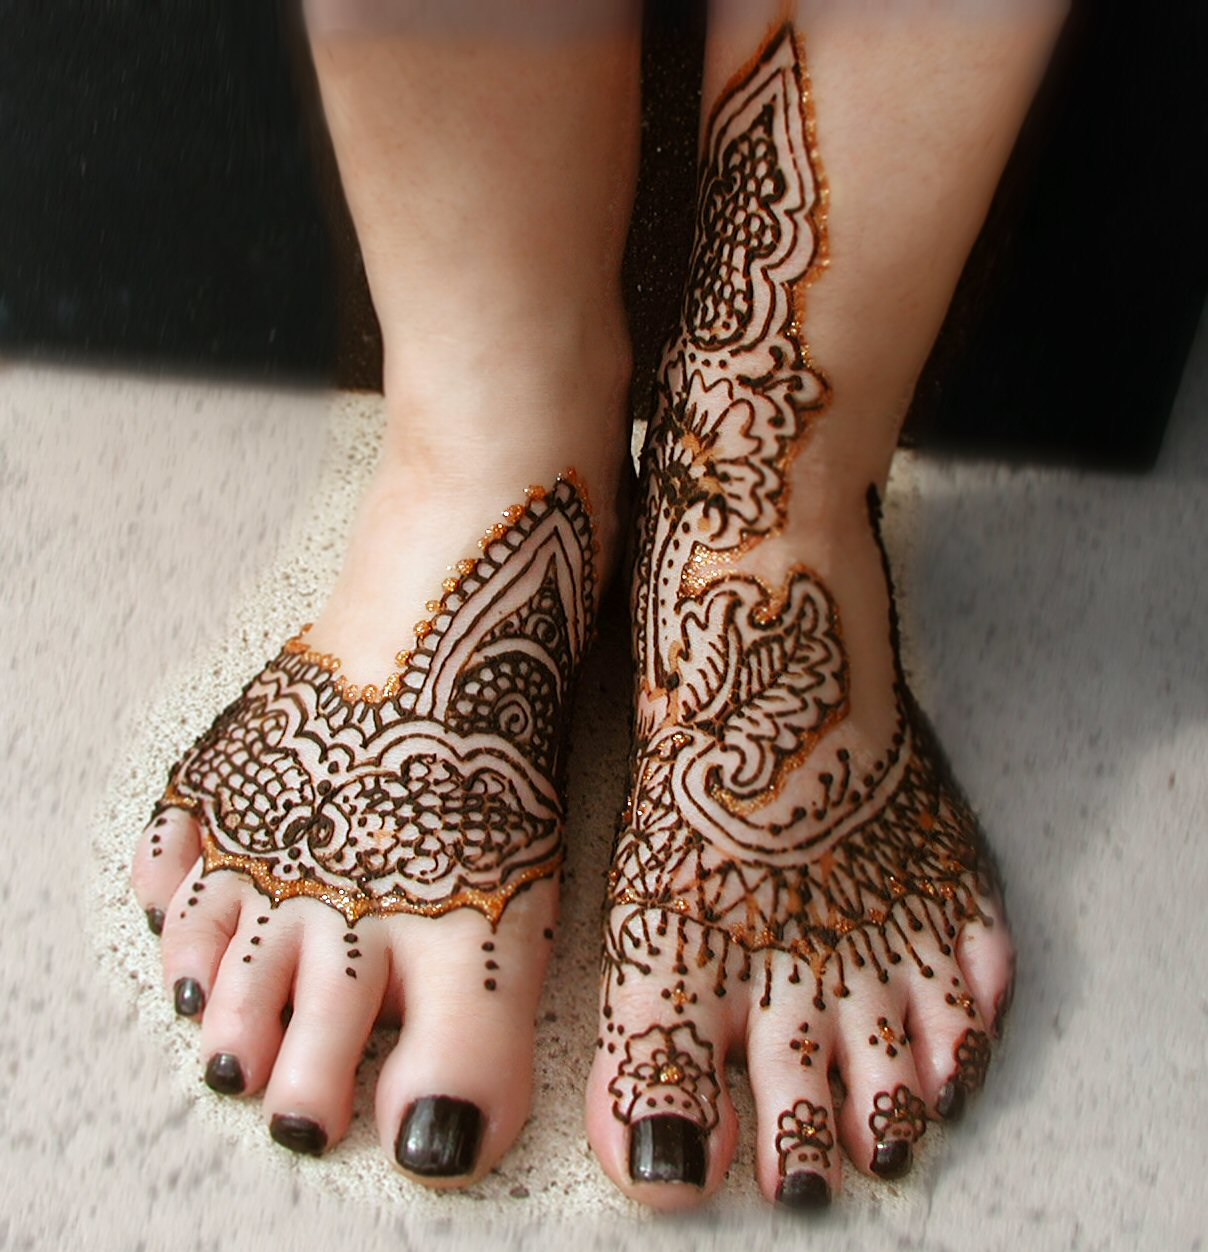 Henna Tattoo On Foot: Verve Evolving: March 2013